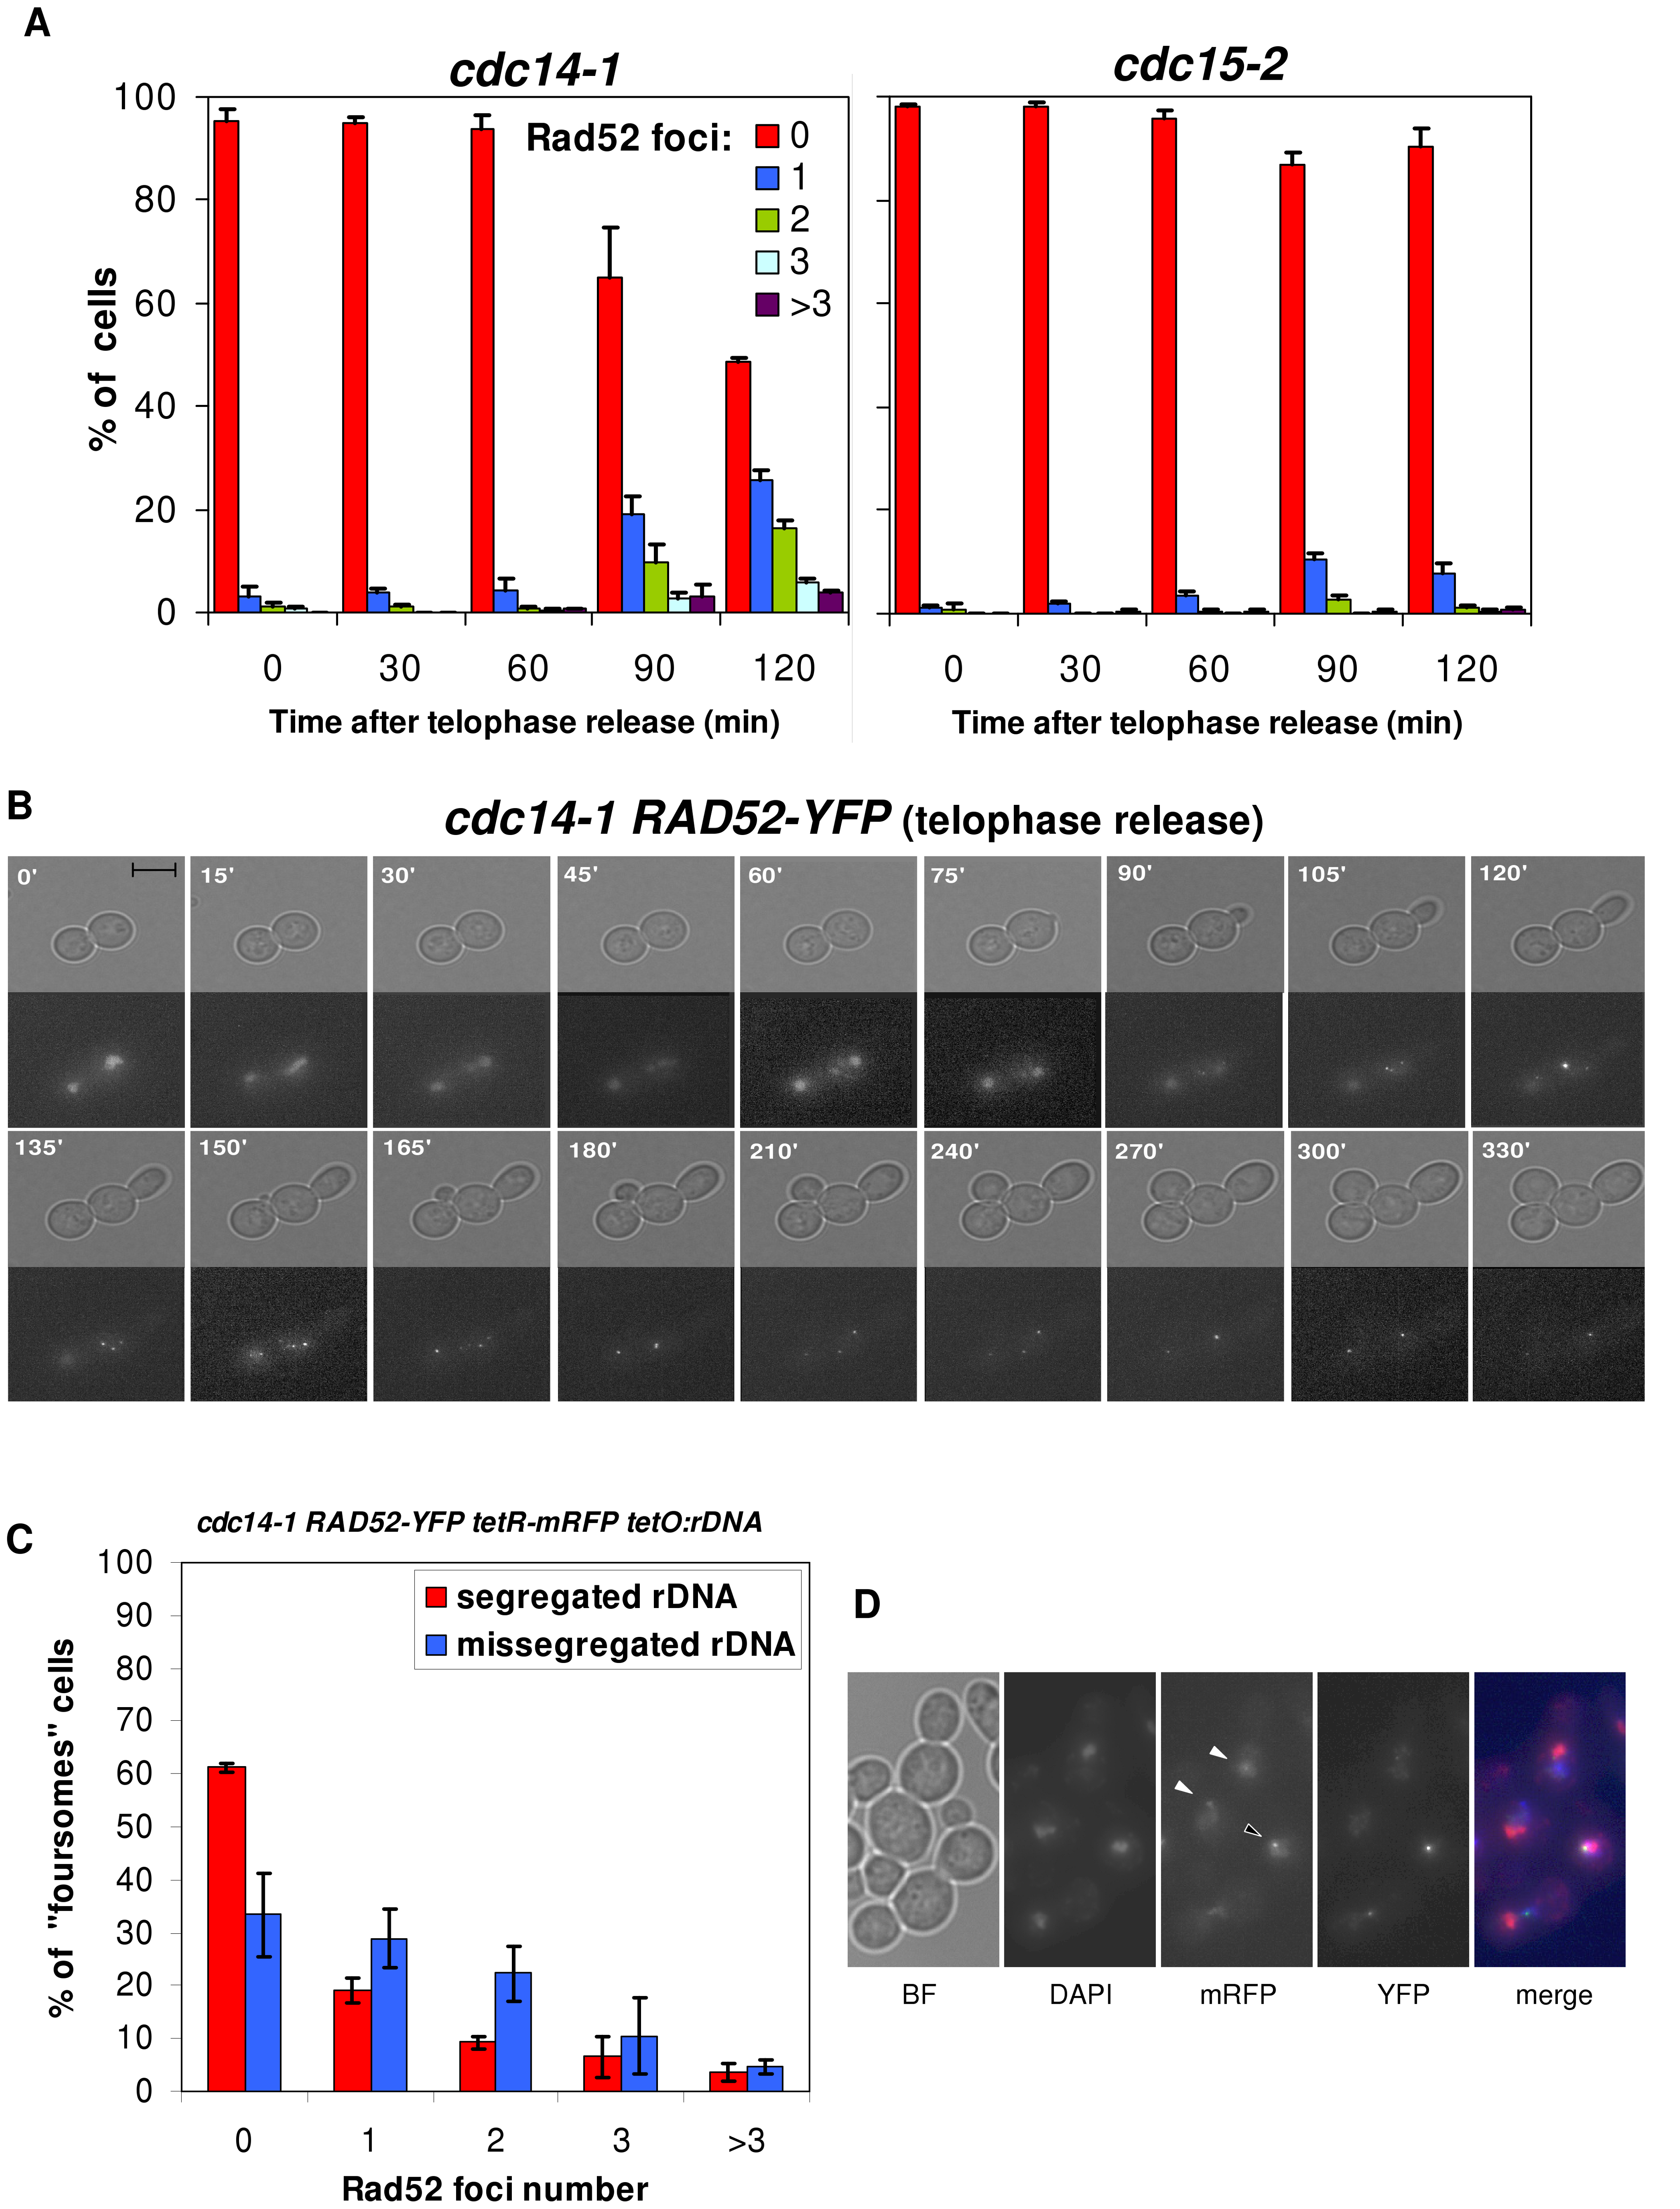 Cells coming from a <i>cdc14-1</i> release frequently form Rad52 repair factories, which accumulate when rDNA missegregation had previously occurred.